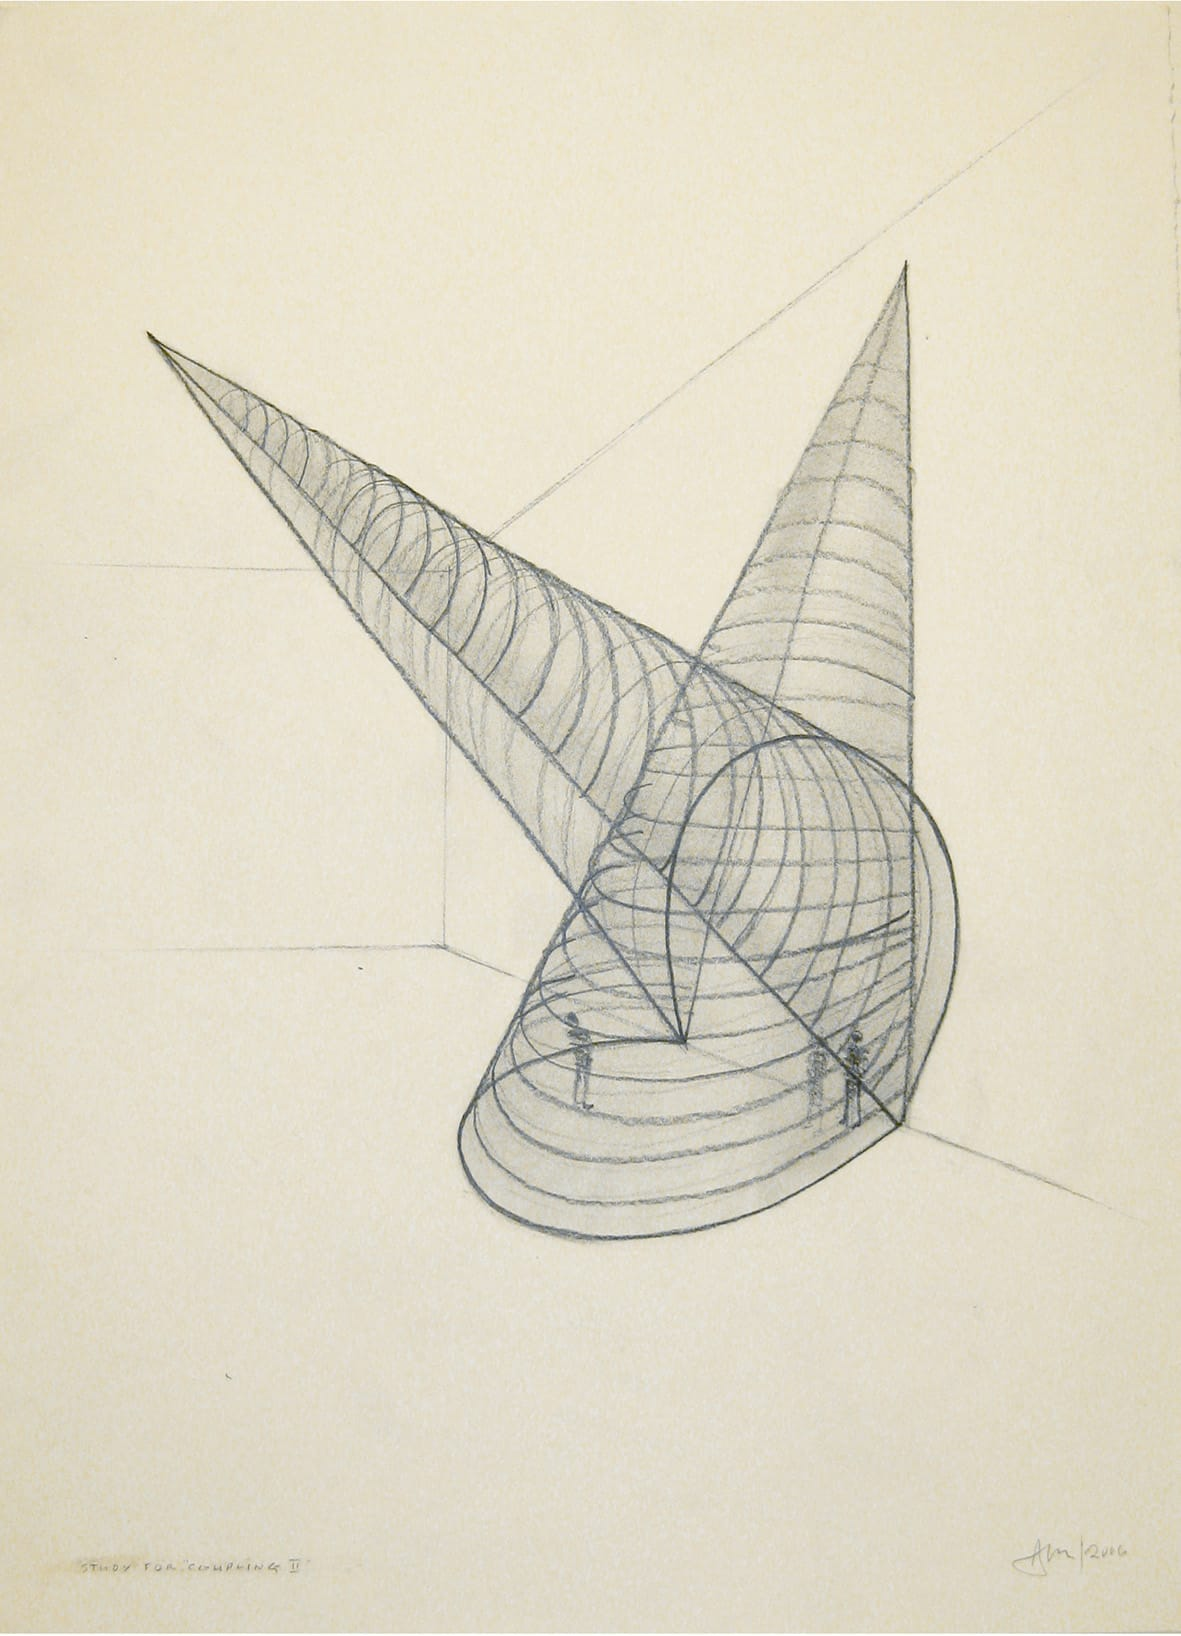 """<span class=""""link fancybox-details-link""""><a href=""""/exhibitions/109/works/artworks4772/"""">View Detail Page</a></span><div class=""""artist""""><strong> Anthony Mccall</strong></div><div class=""""title""""><em>Study for Coupling II</em>, 2006</div><div class=""""signed_and_dated"""">titled, signed and dated, recto</div><div class=""""medium"""">graphite on paper</div><div class=""""dimensions"""">paper: 30 x 22 3/8 inches (76.2 x 56.8 cm)</div>"""